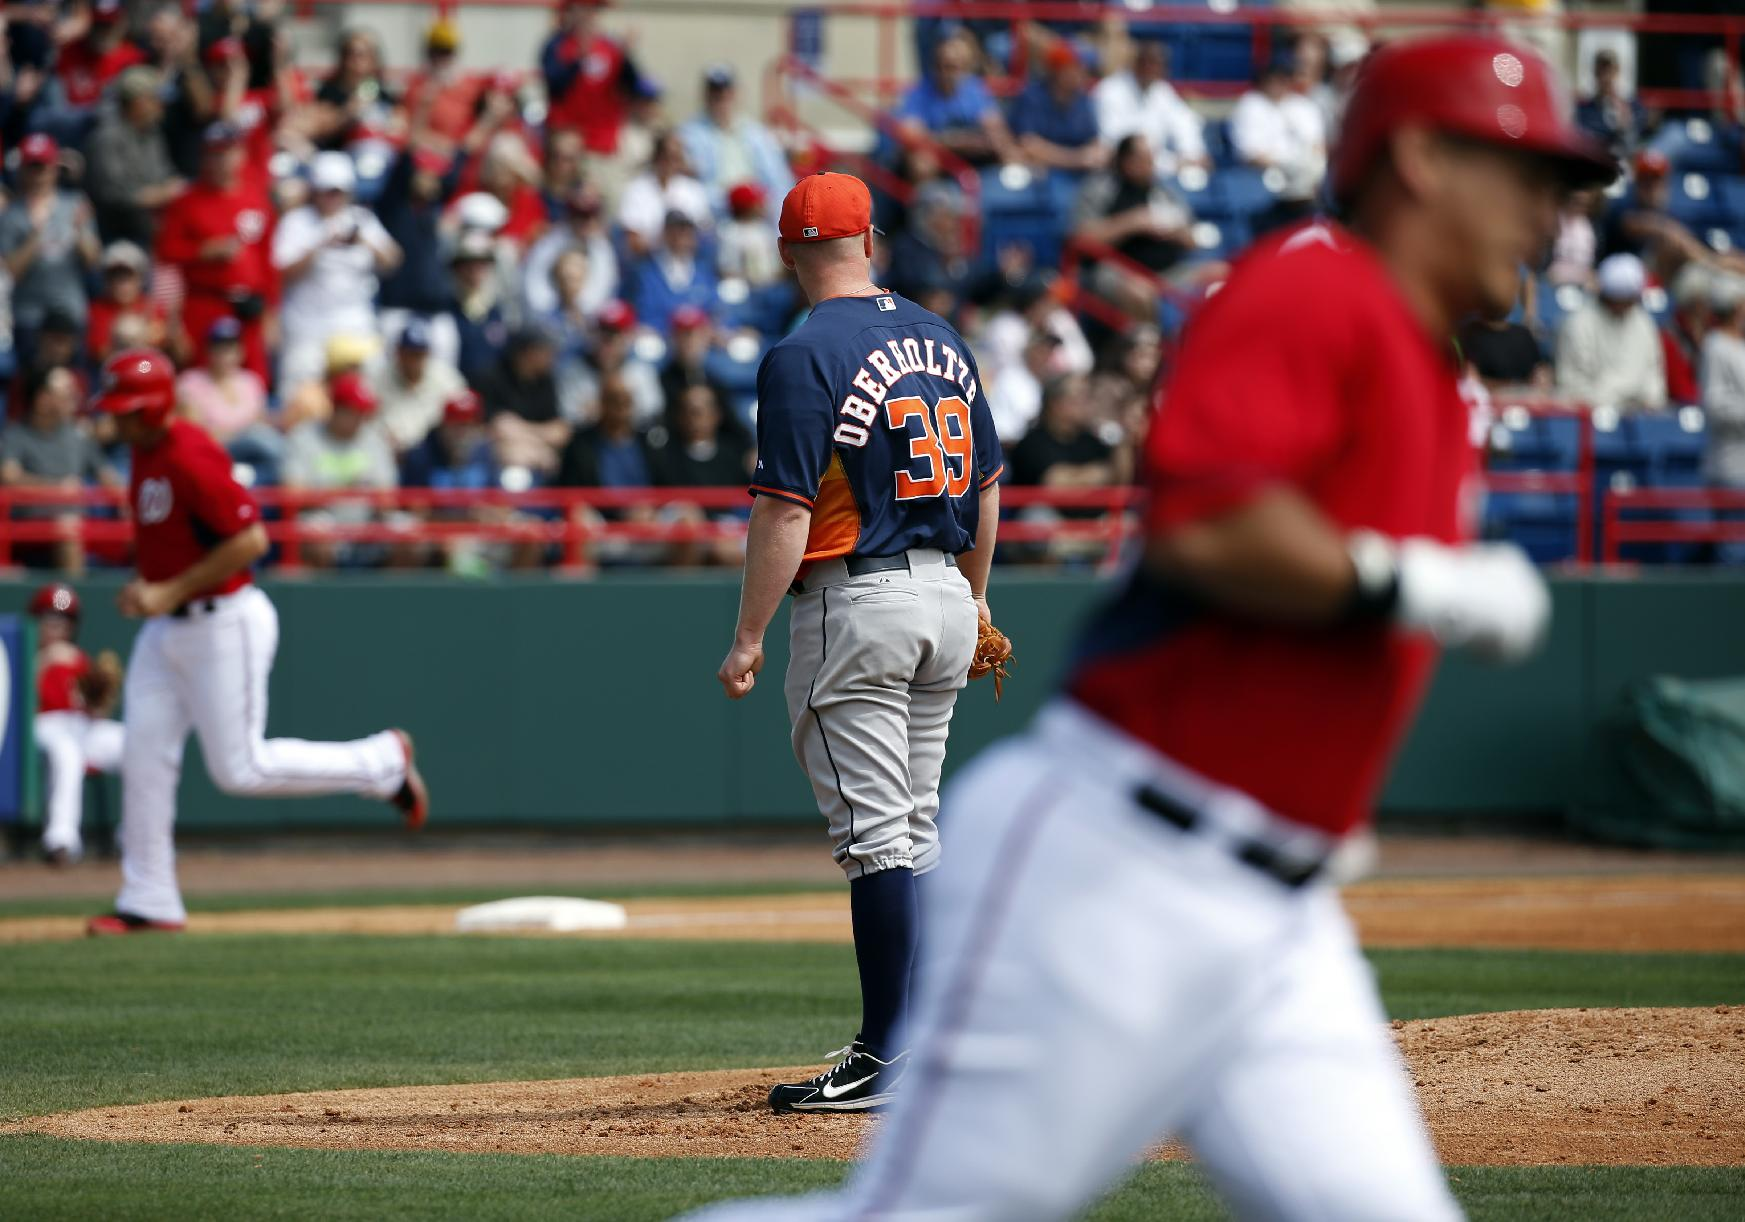 Houston Astros starting pitcher Brett Oberholtzer (39) watches as members of the Washington Nationals round the bases during Wilson Ramos' three-run homer in the first inning of a spring exhibition baseball game, Friday, March 7, 2014, in Viera, Fla